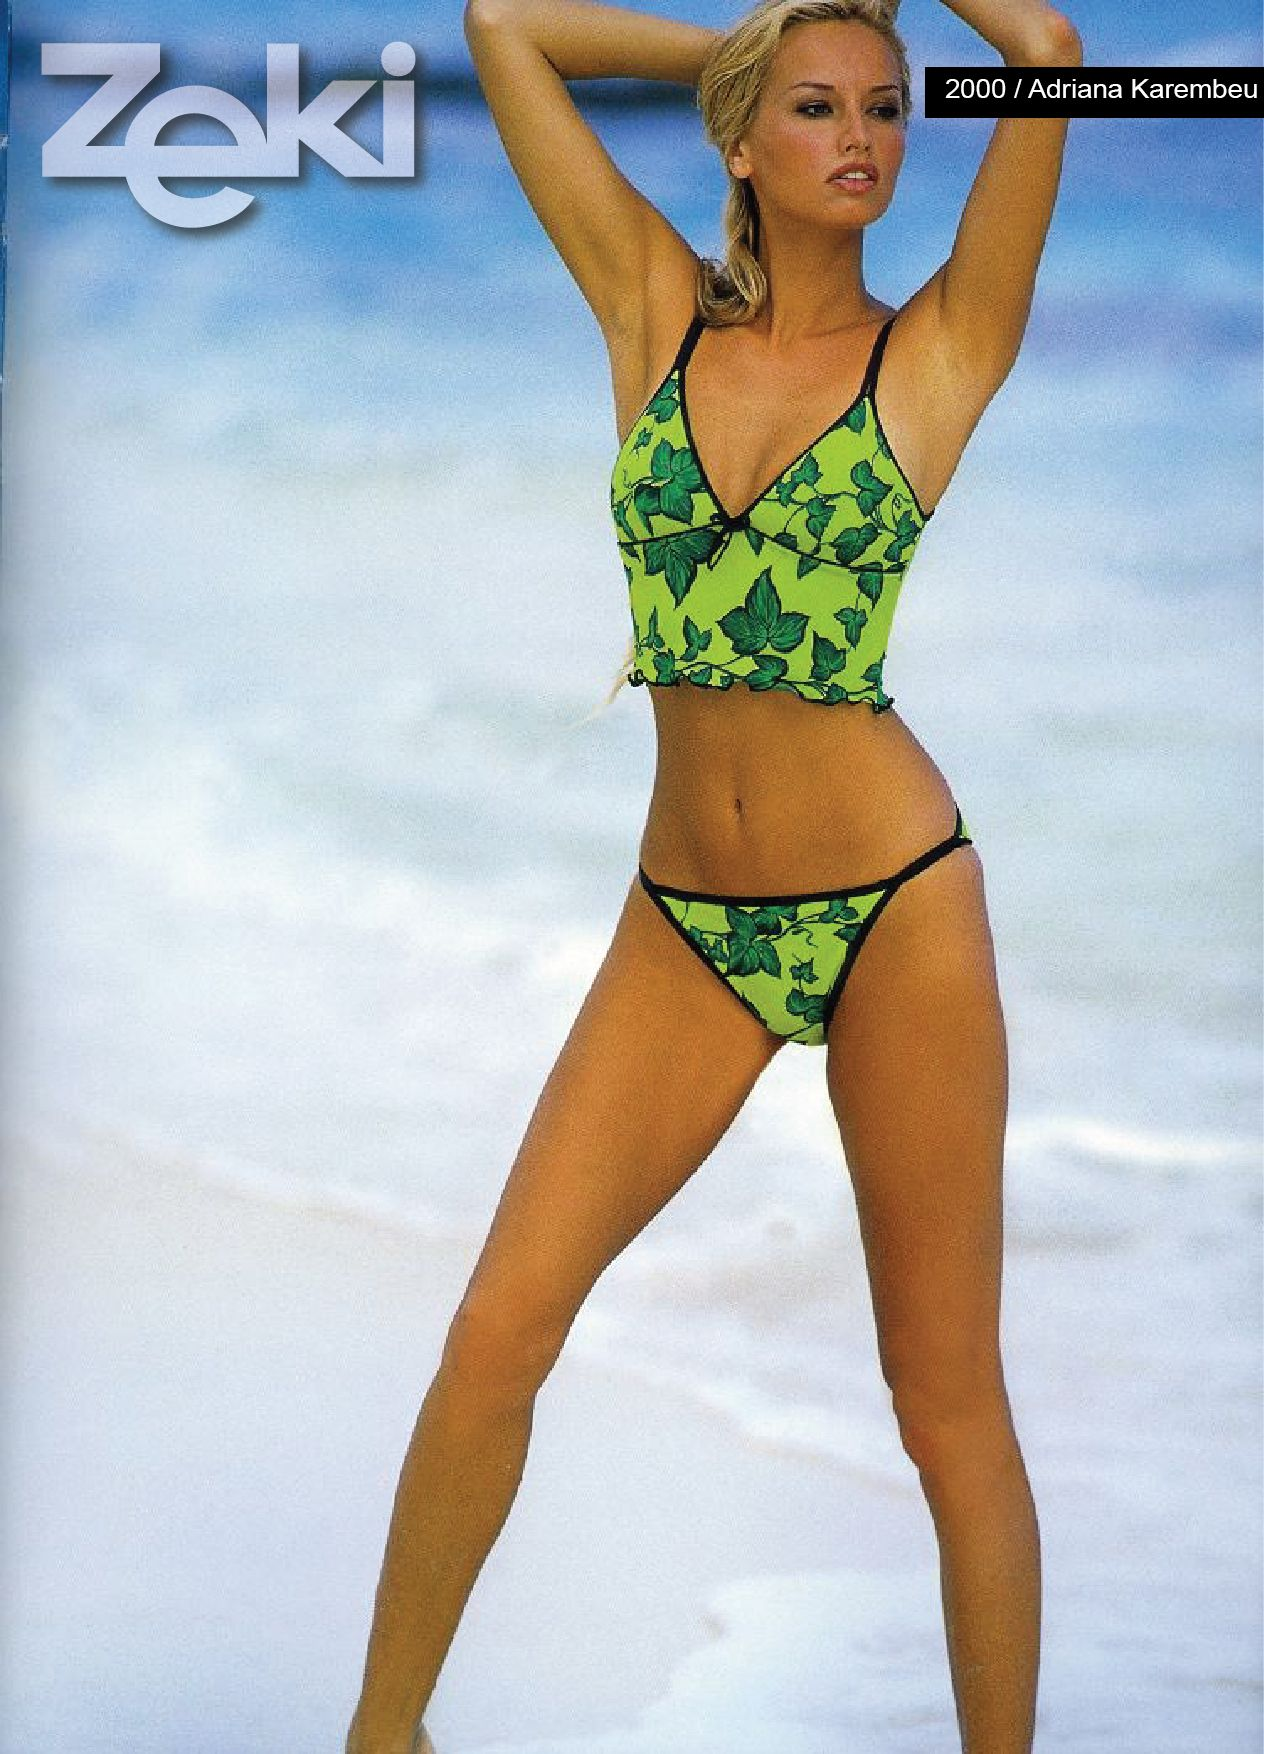 Adriana Karembeu was the model of Zeki Triko in 2000. zeki triko